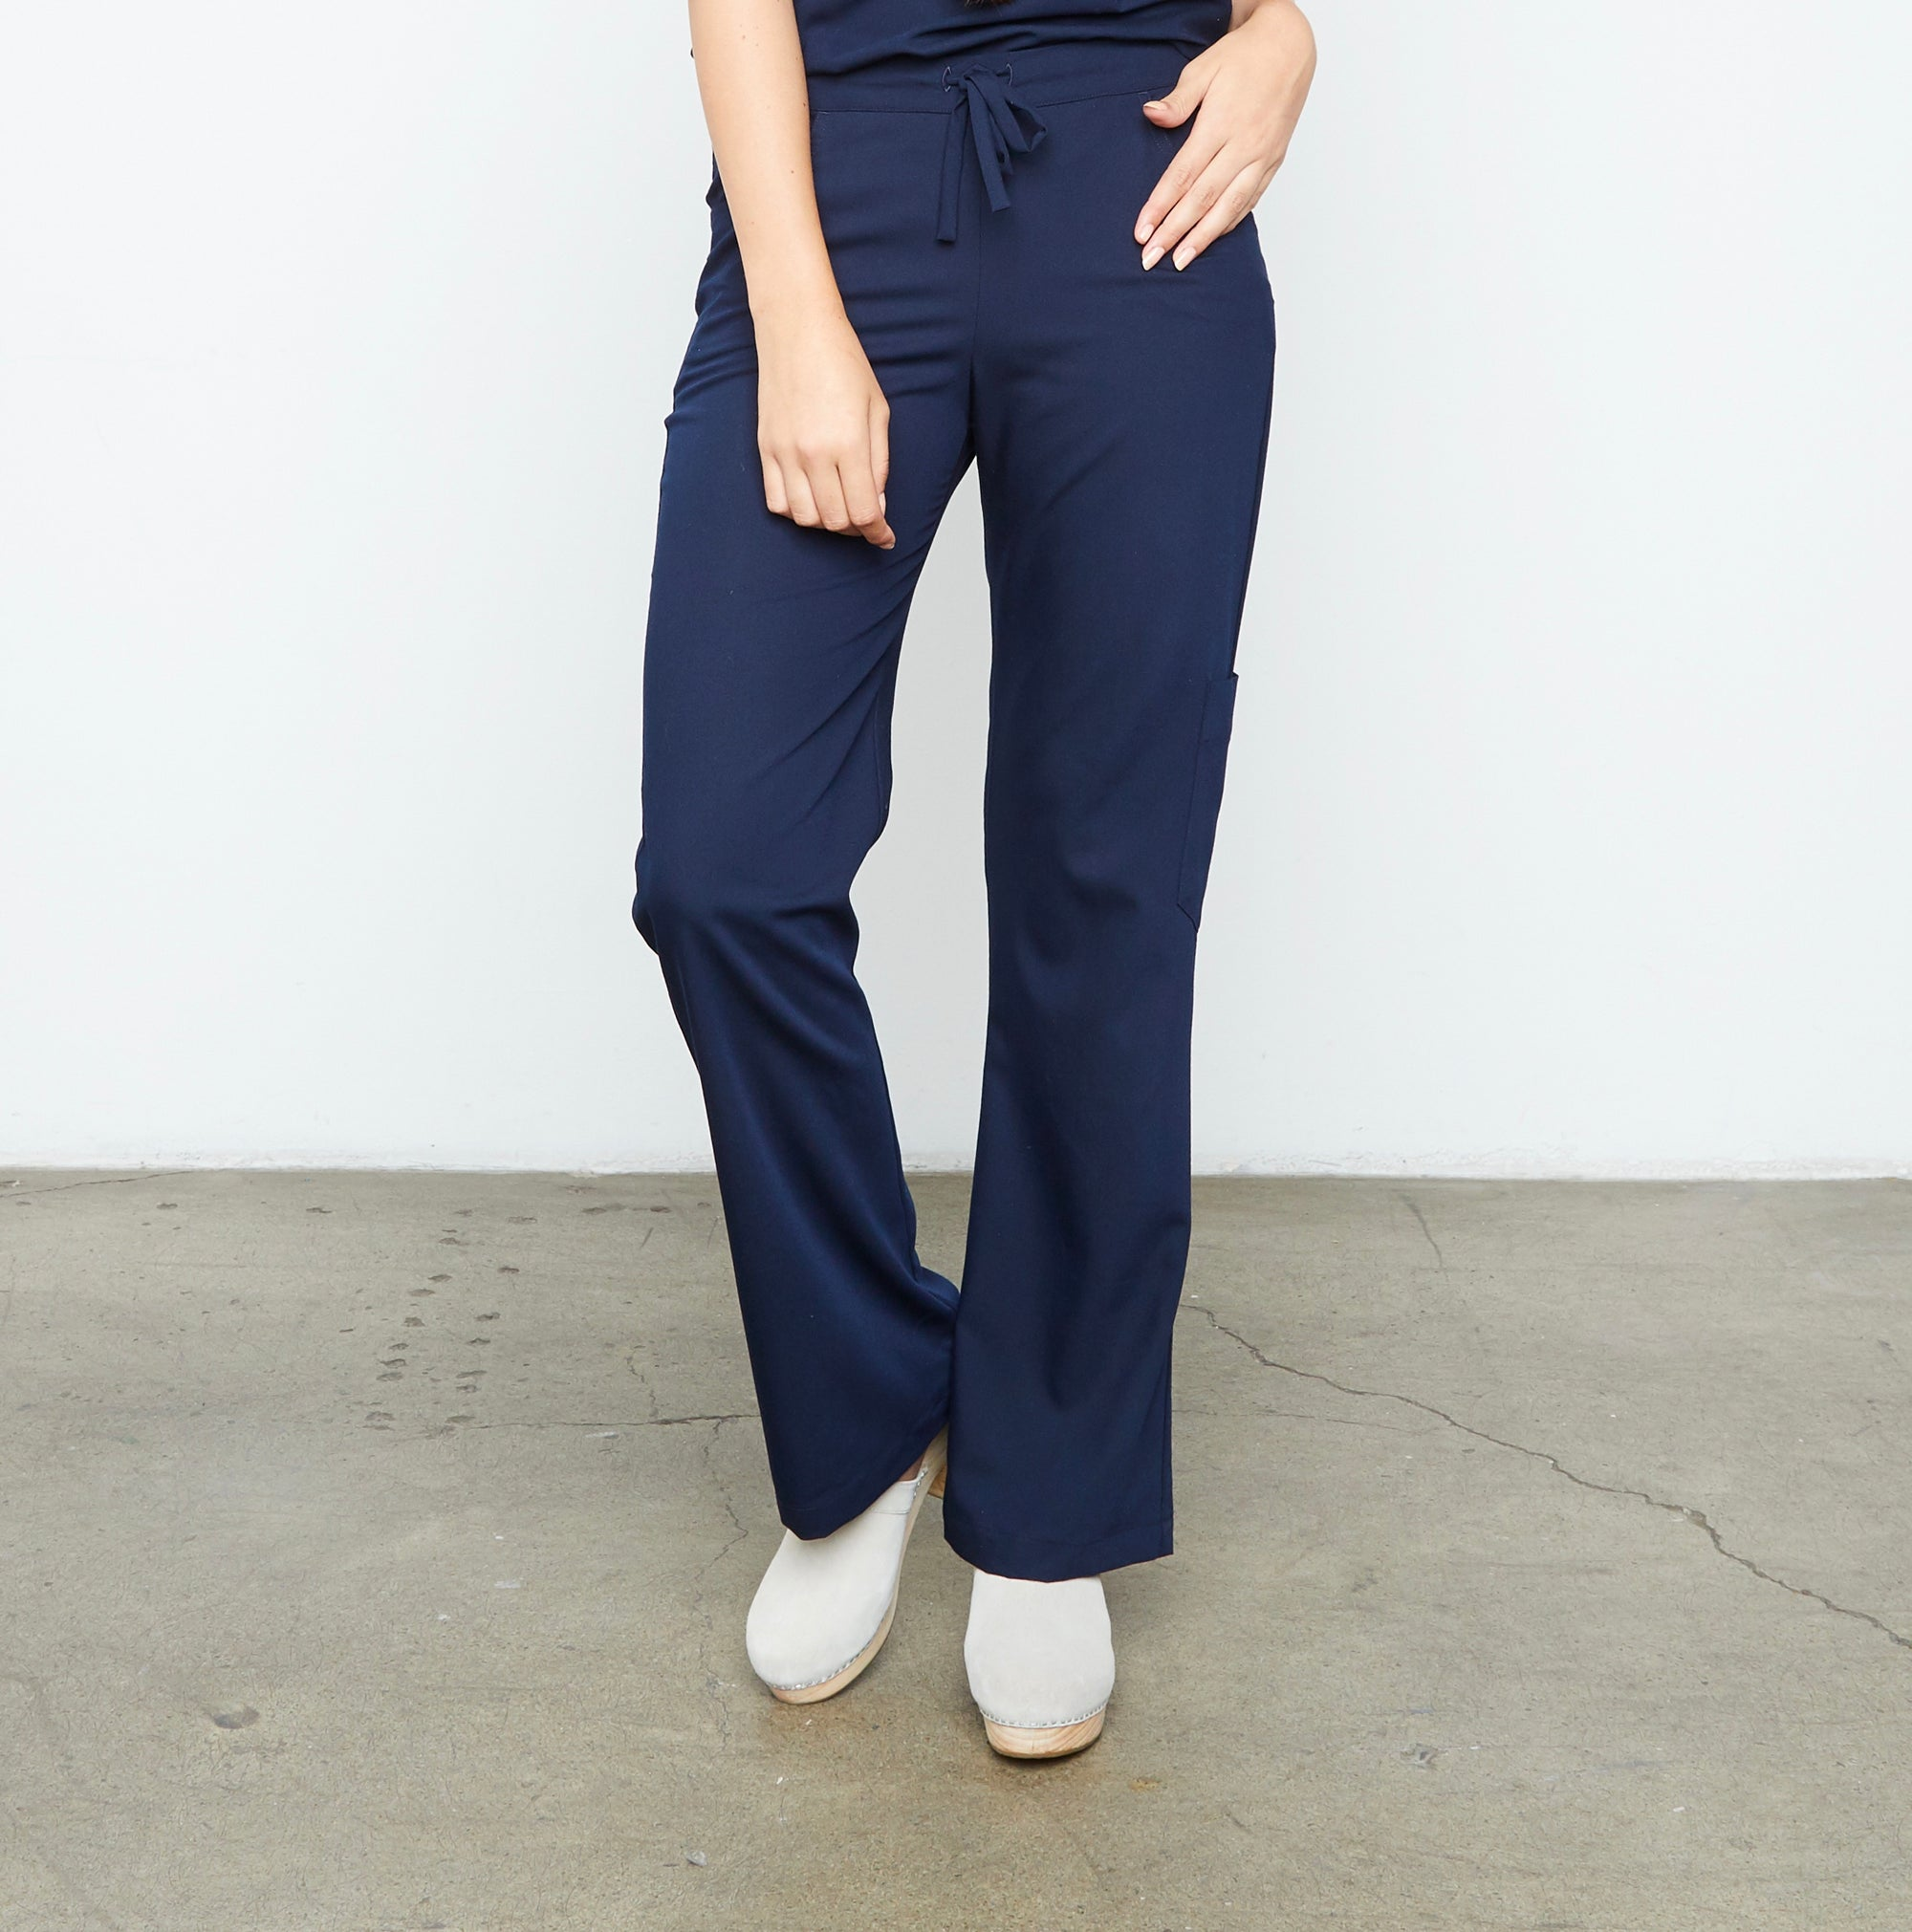 Maverick Pant (Really Dark Navy) XXS | Fabled makes beautiful high quality scrub pants for women. Scrubs fashion for women doctors and female medical workers.